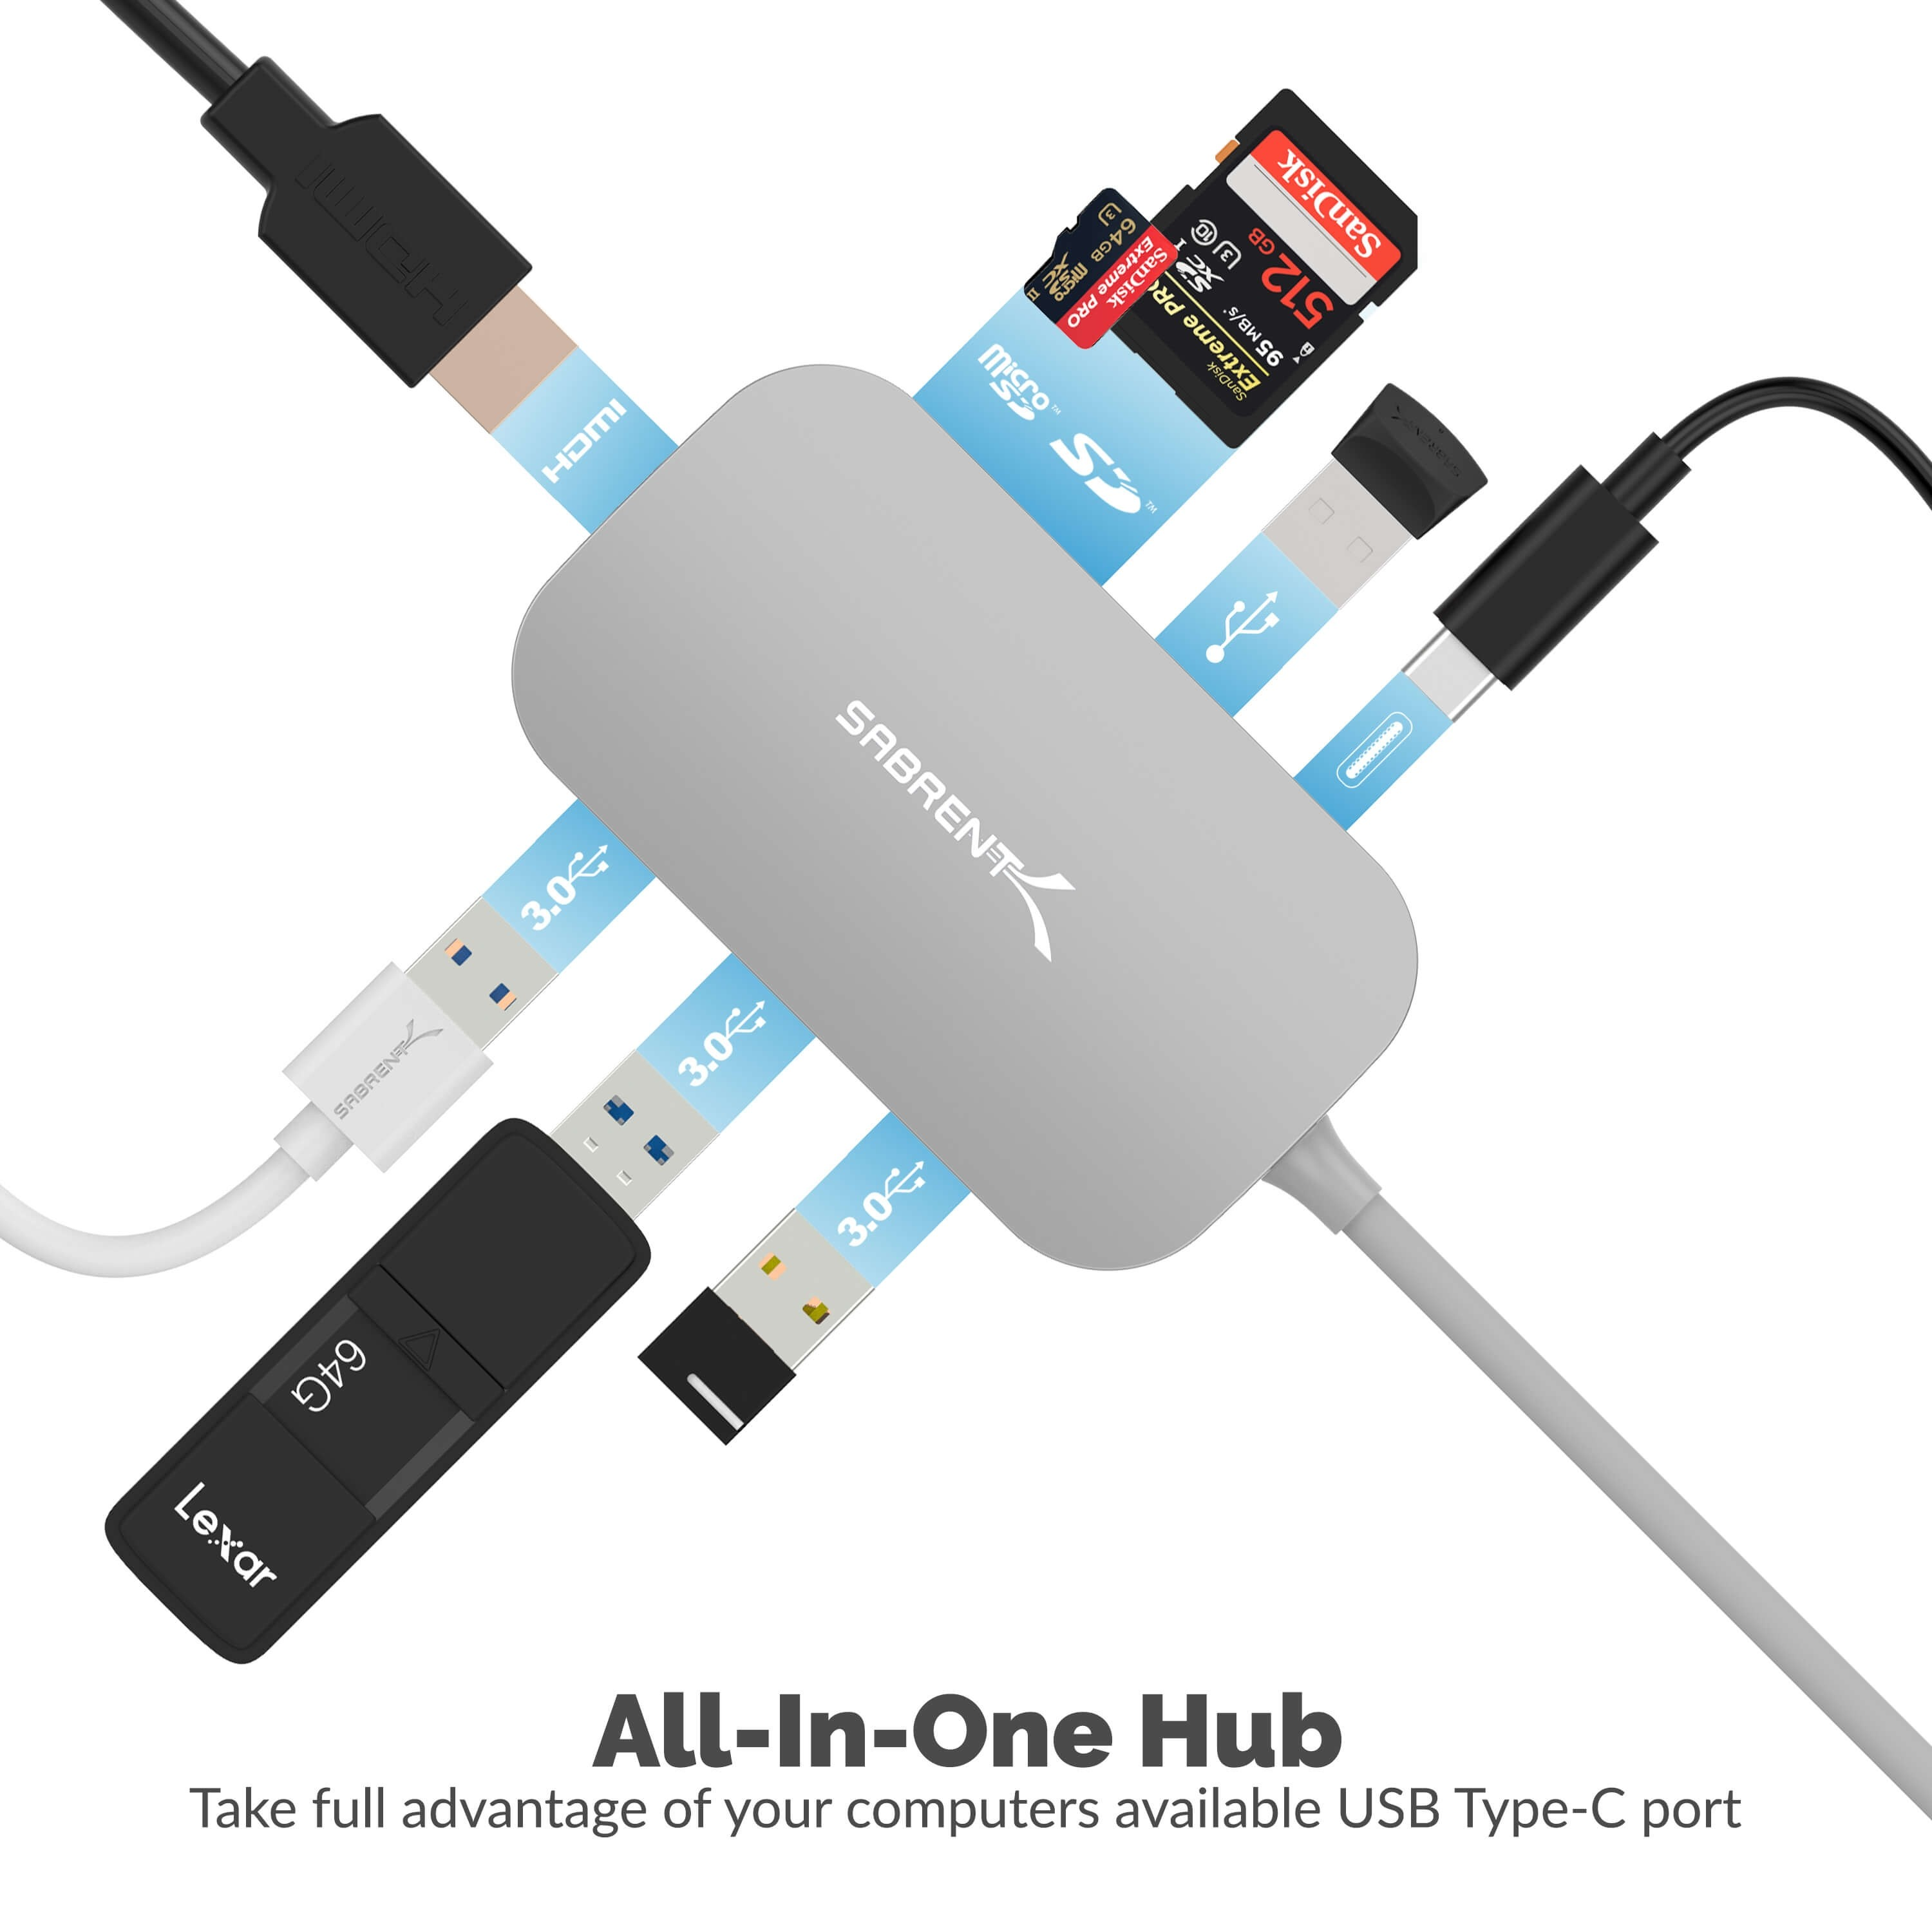 Sabrent 8-in-1 USB Type-C Hub with HDMI(4K) Output, 3 USB 3.0 Ports, 1 USB 2.0 Port, SD/MicroSD Multi-Card Reader, DS-UHCR